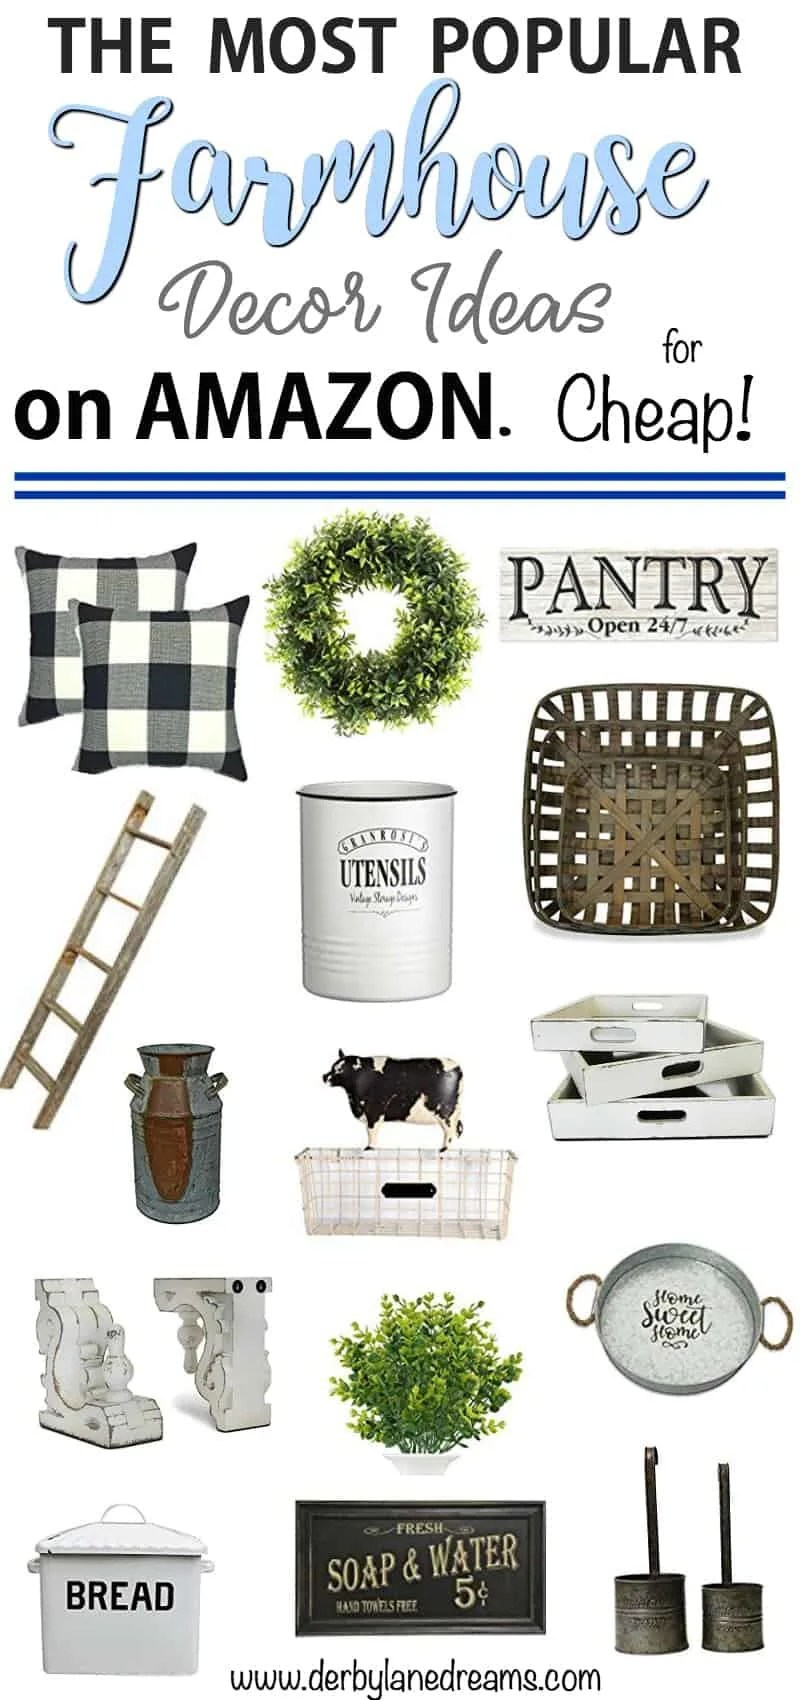 Farmhouse-kitchen-decor-ideas-on-a-budget-rustic-diy-country-joanna-gaines